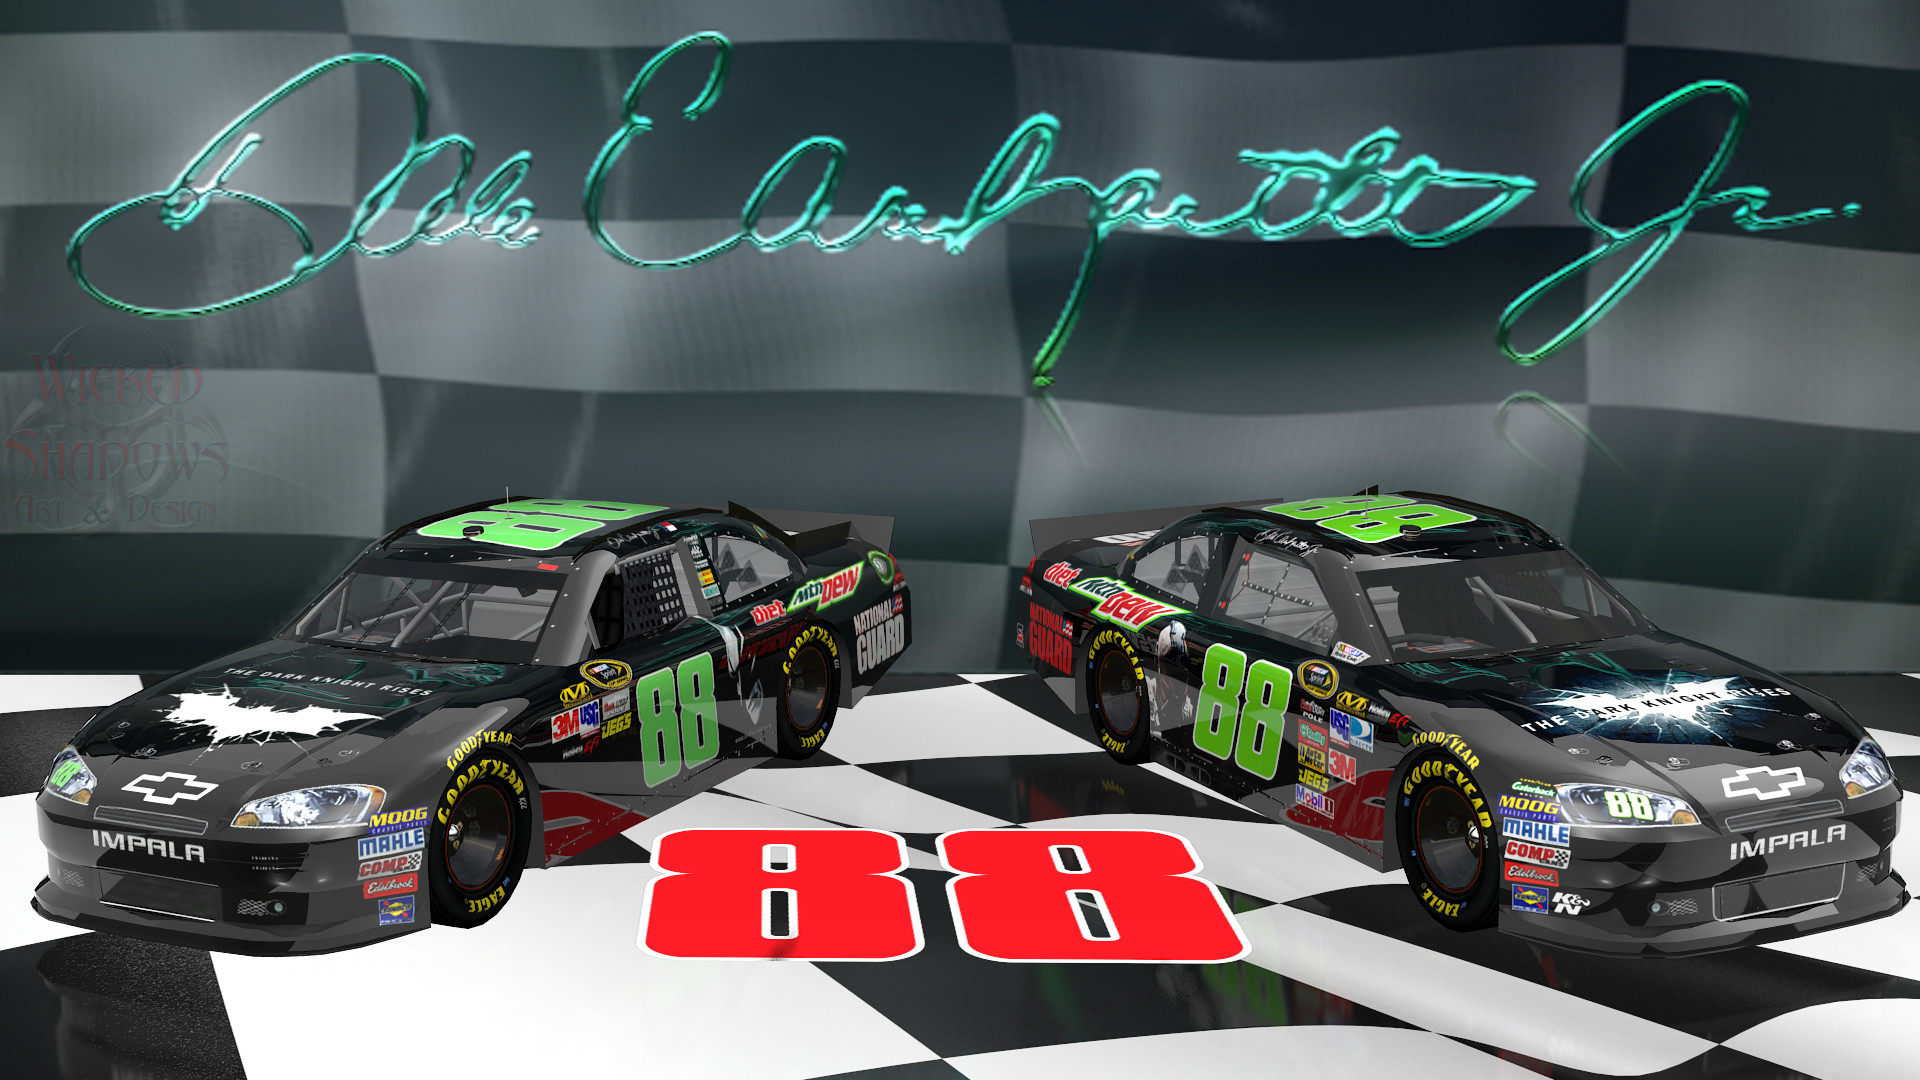 1920x1080 Dale Earnhardt Jr Dale Earnhardt Jr Victory Lane Dark Knight wallpaper .